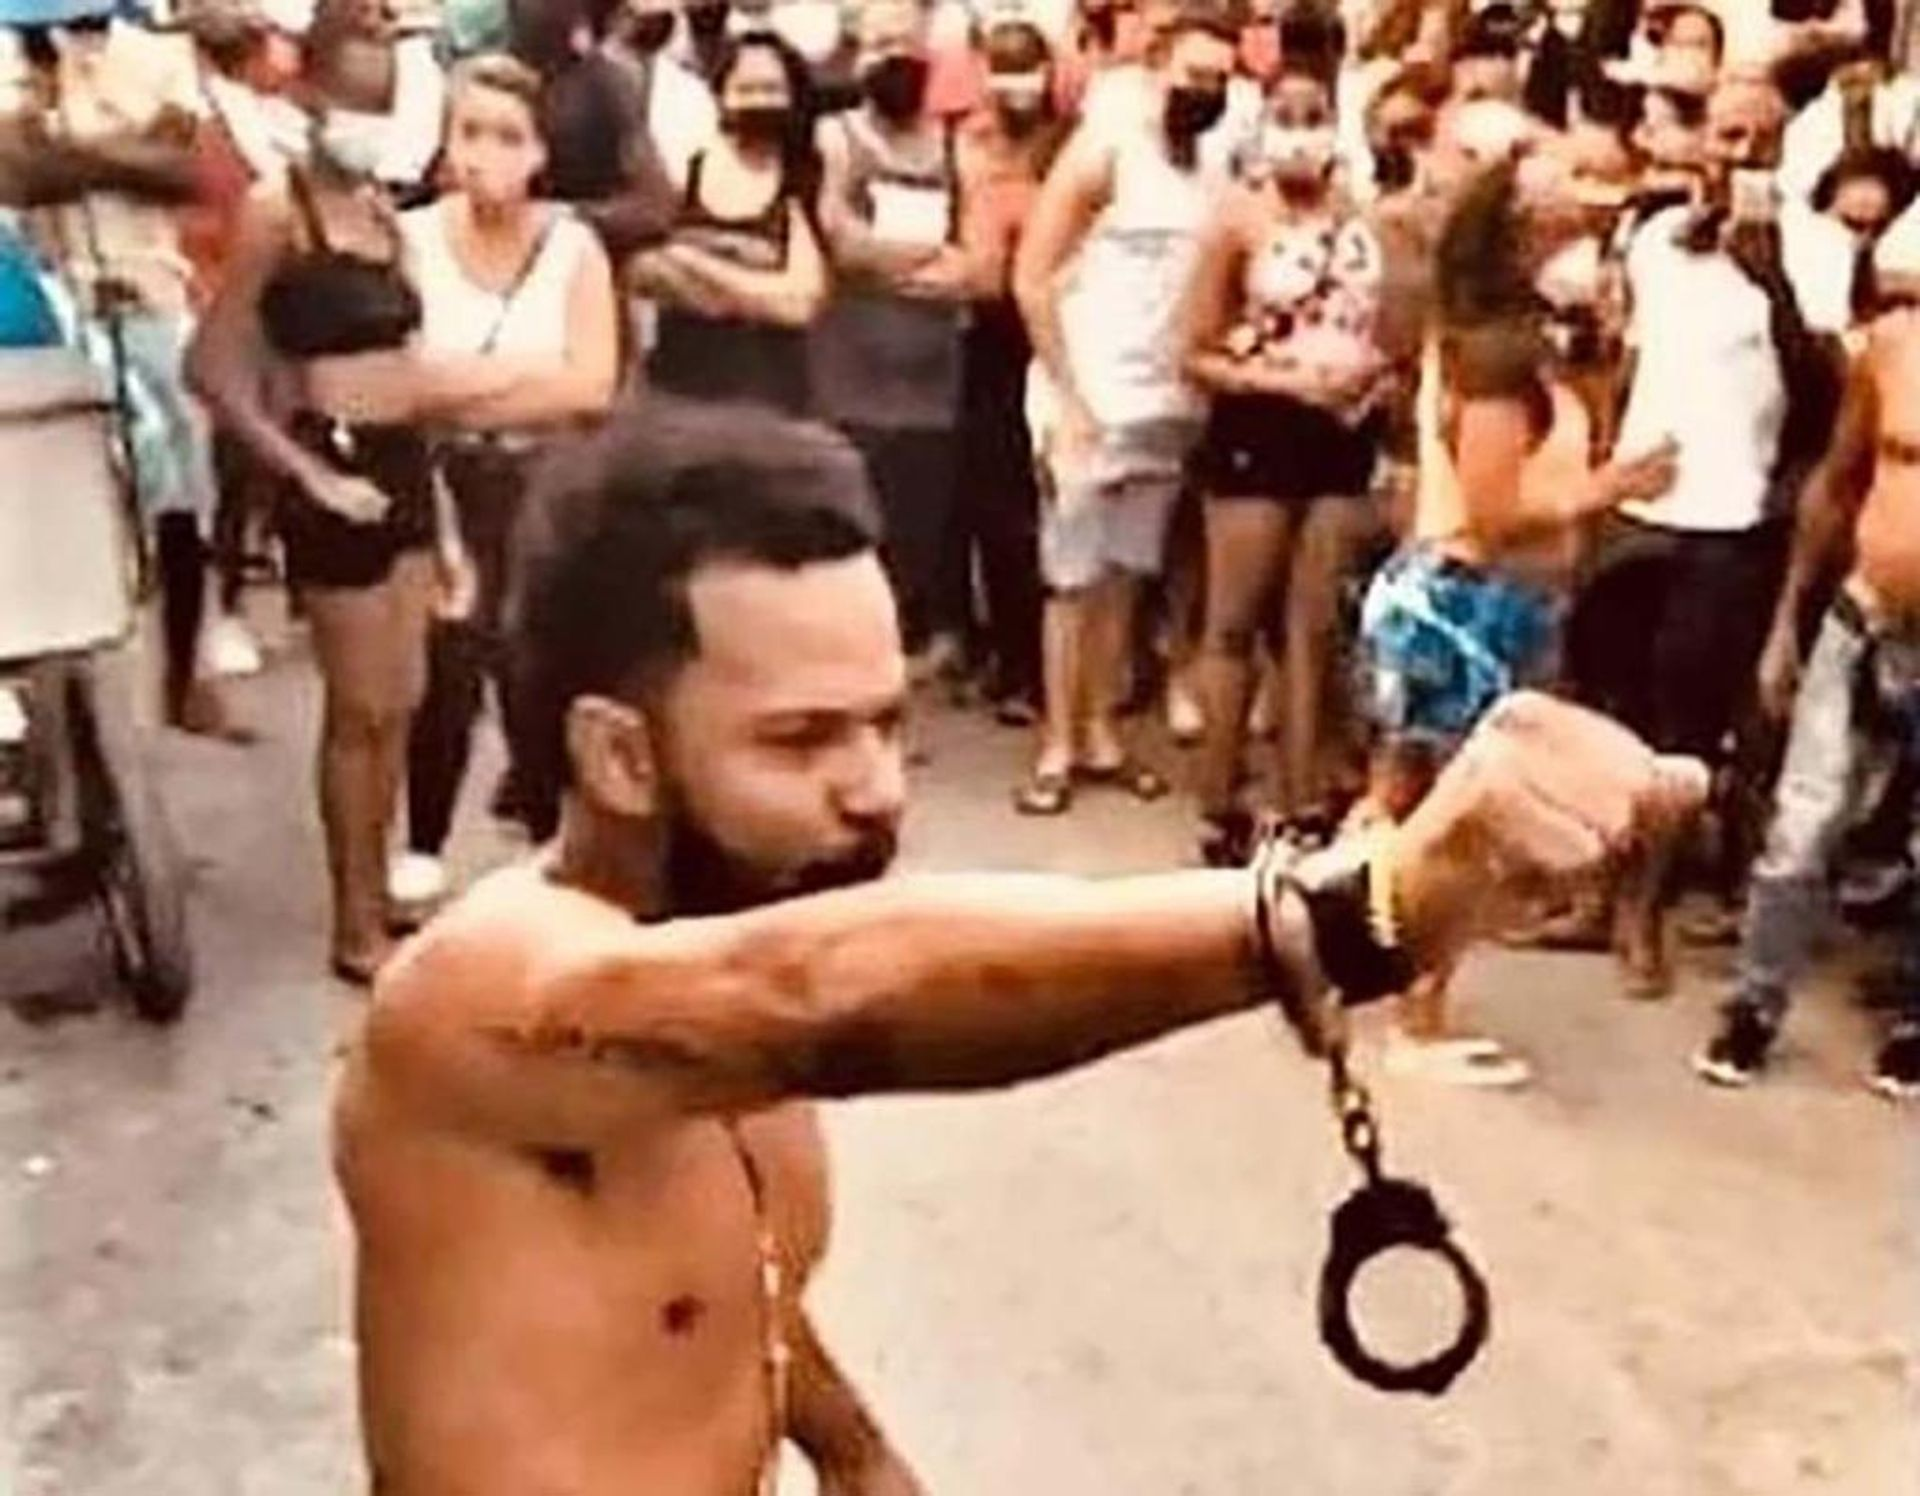 Police attempted to arrest the artist Maykel Osorbo in San Idisdro on 4 April, but passersby came together to protest and prevent his detention